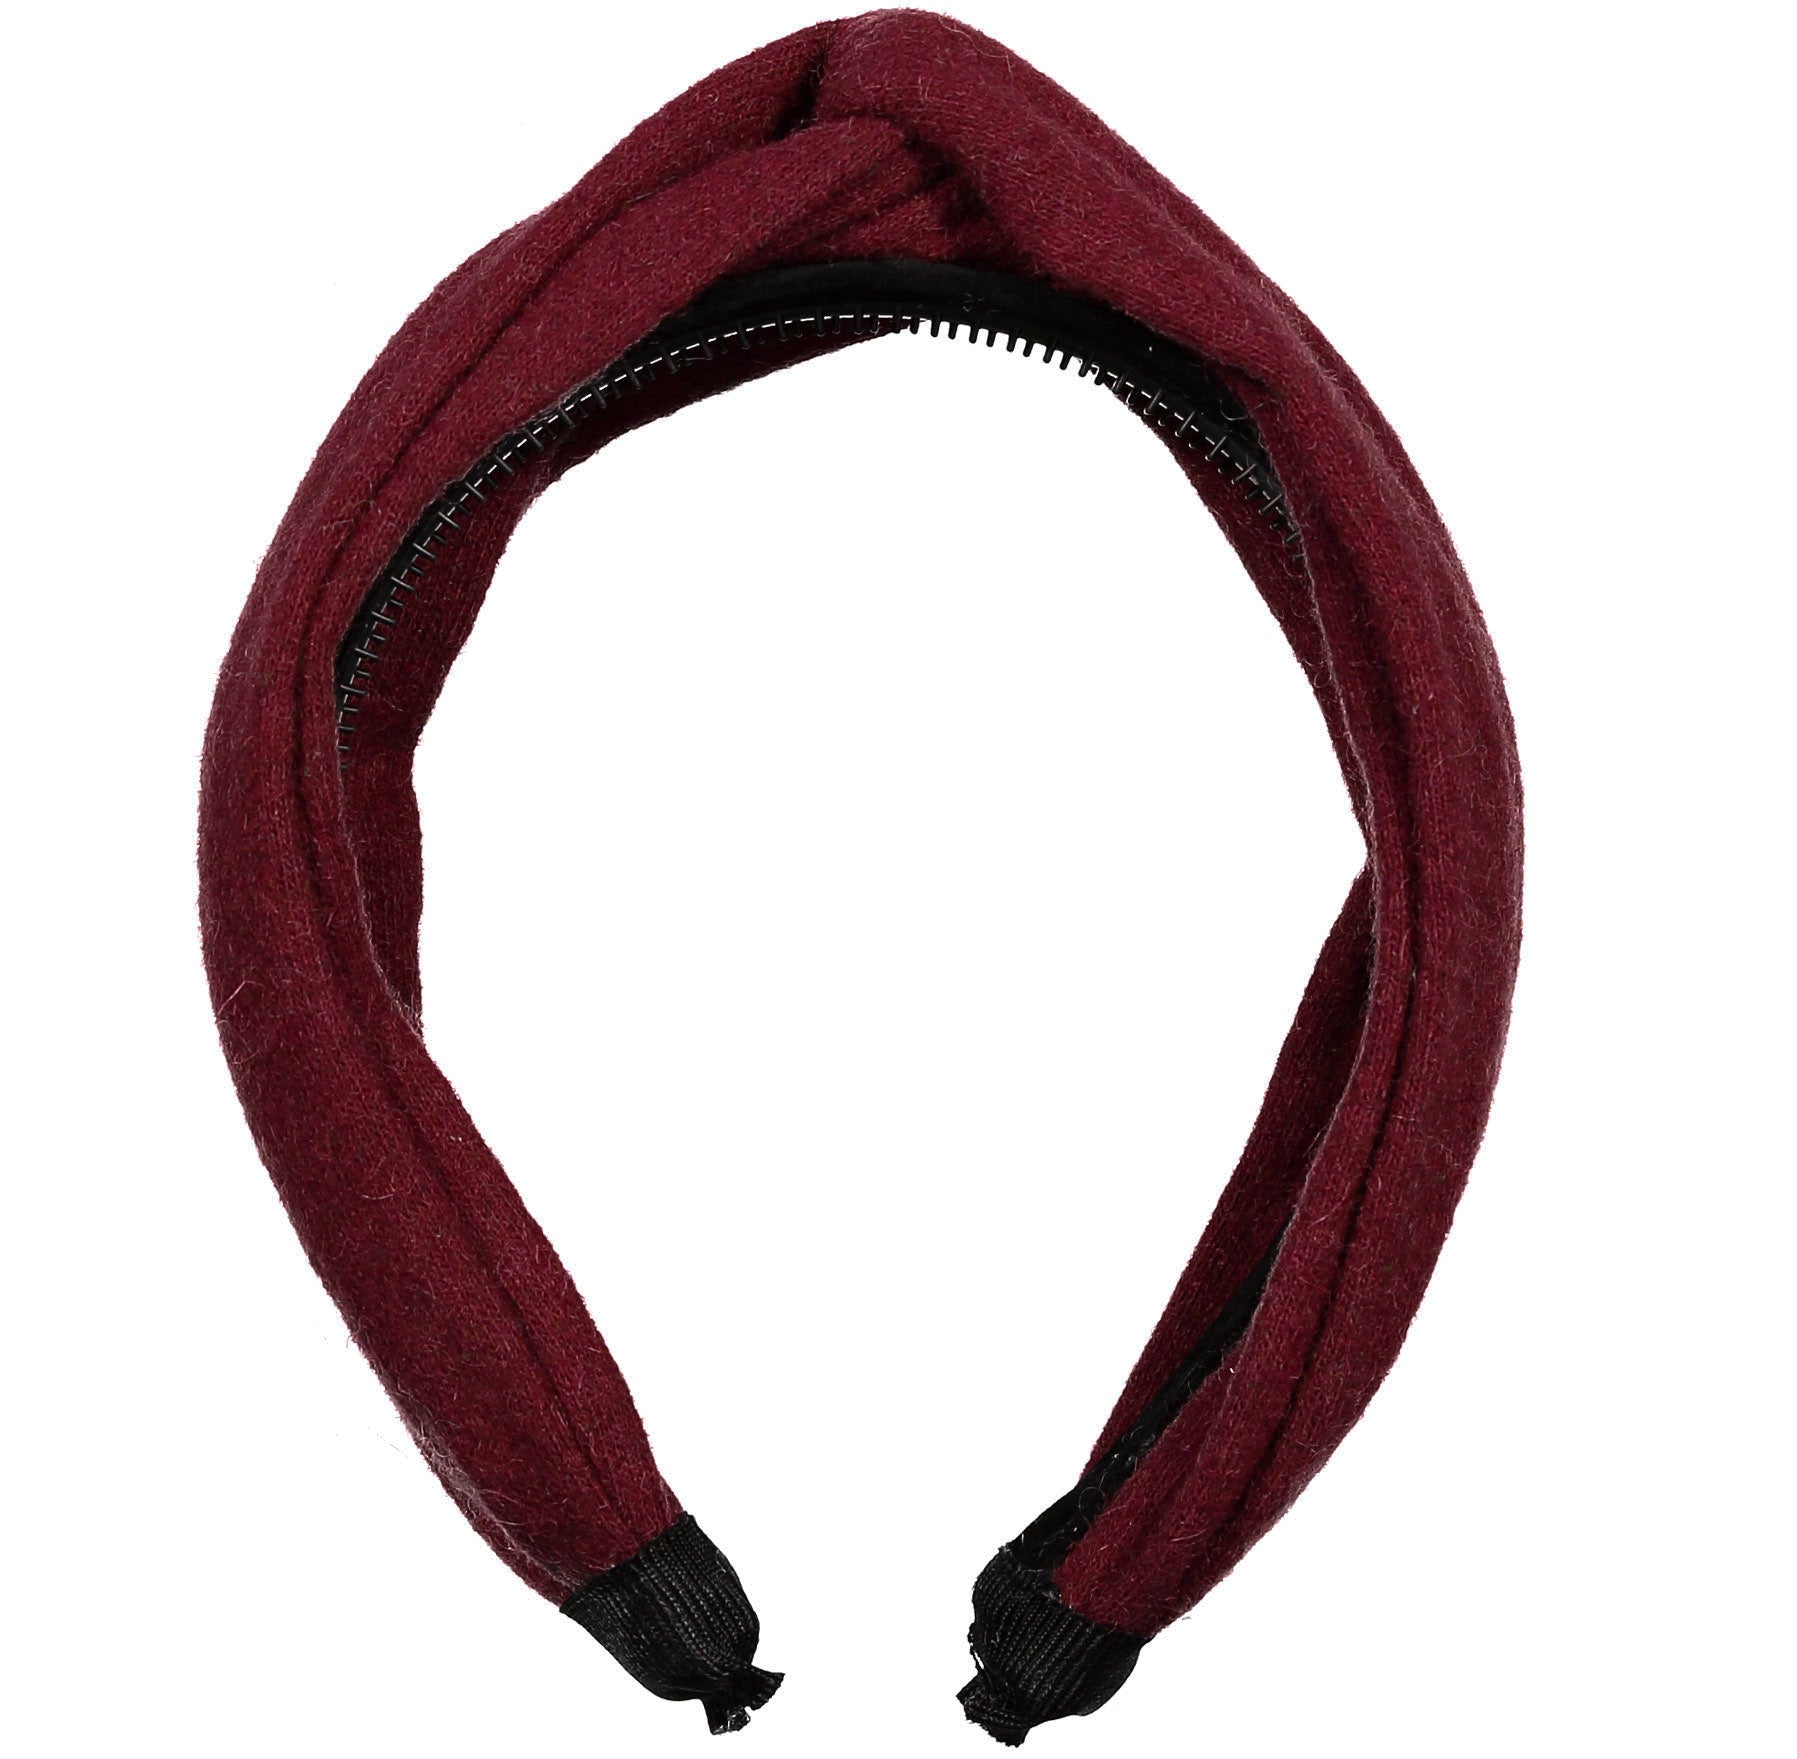 Knot Hairbands Rosewood Twister Headband - Ladida